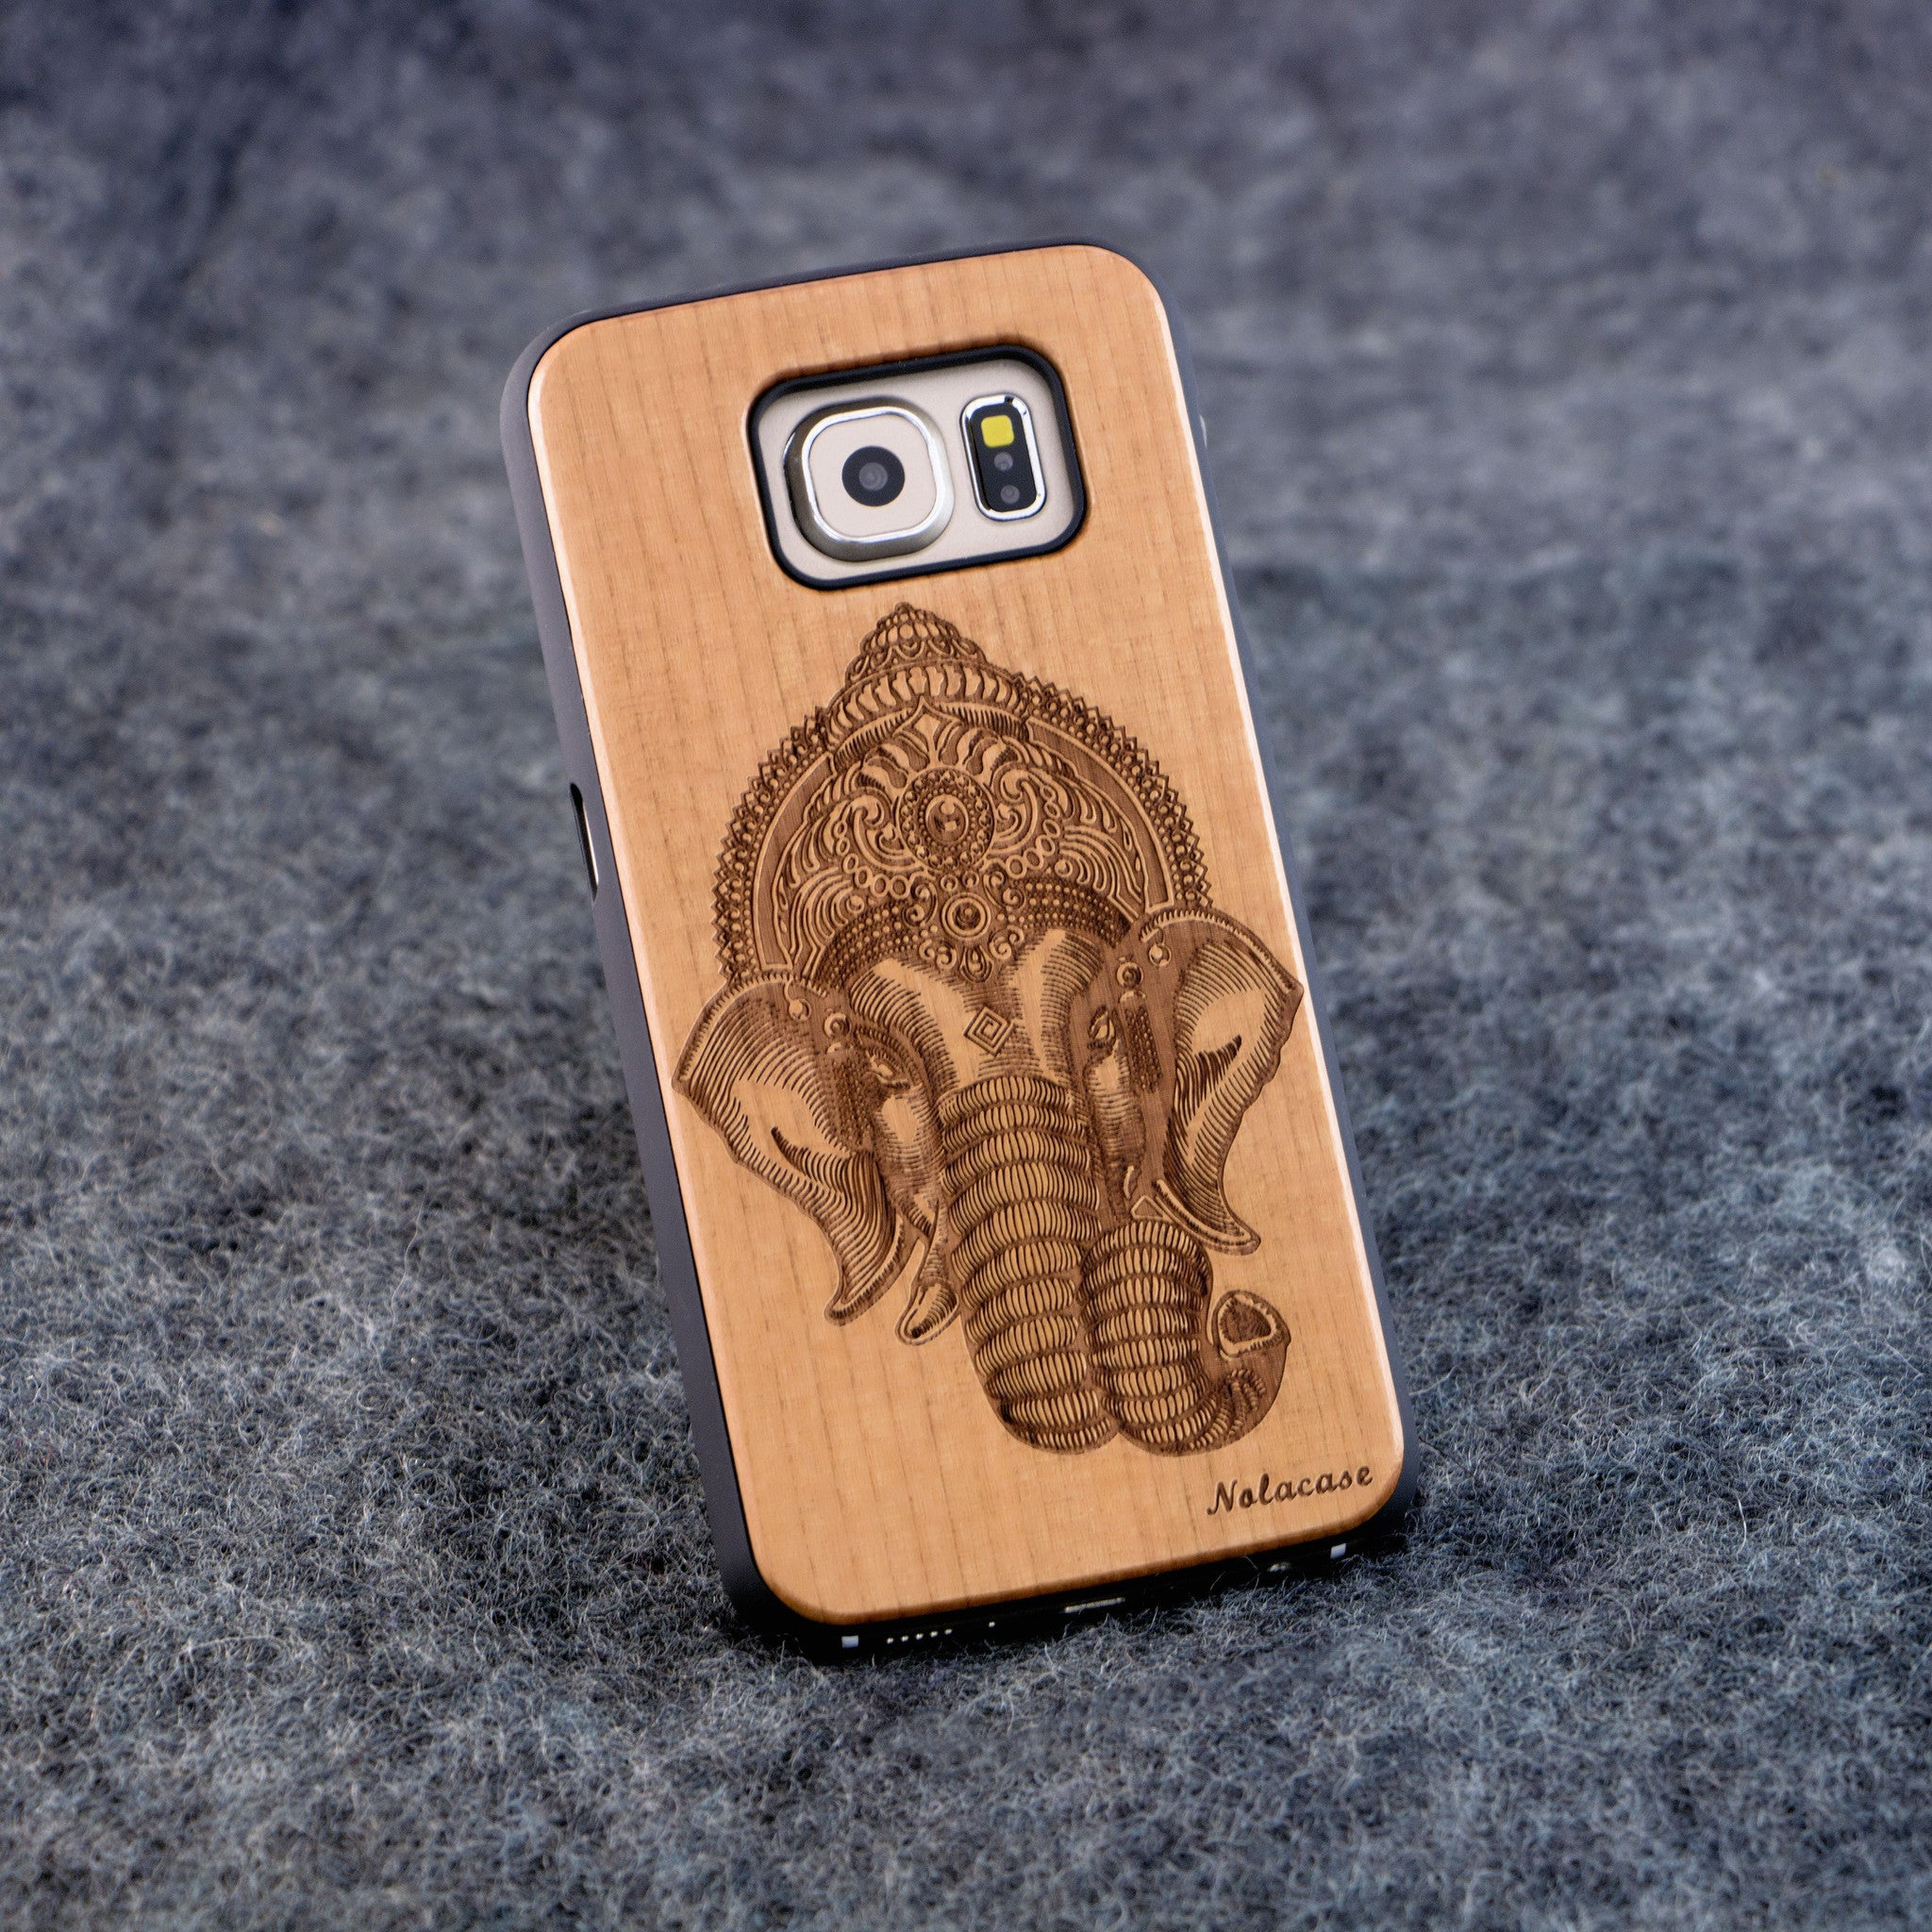 Samsung S6 Indian Elephant Slim Wood Case - NOLACASE